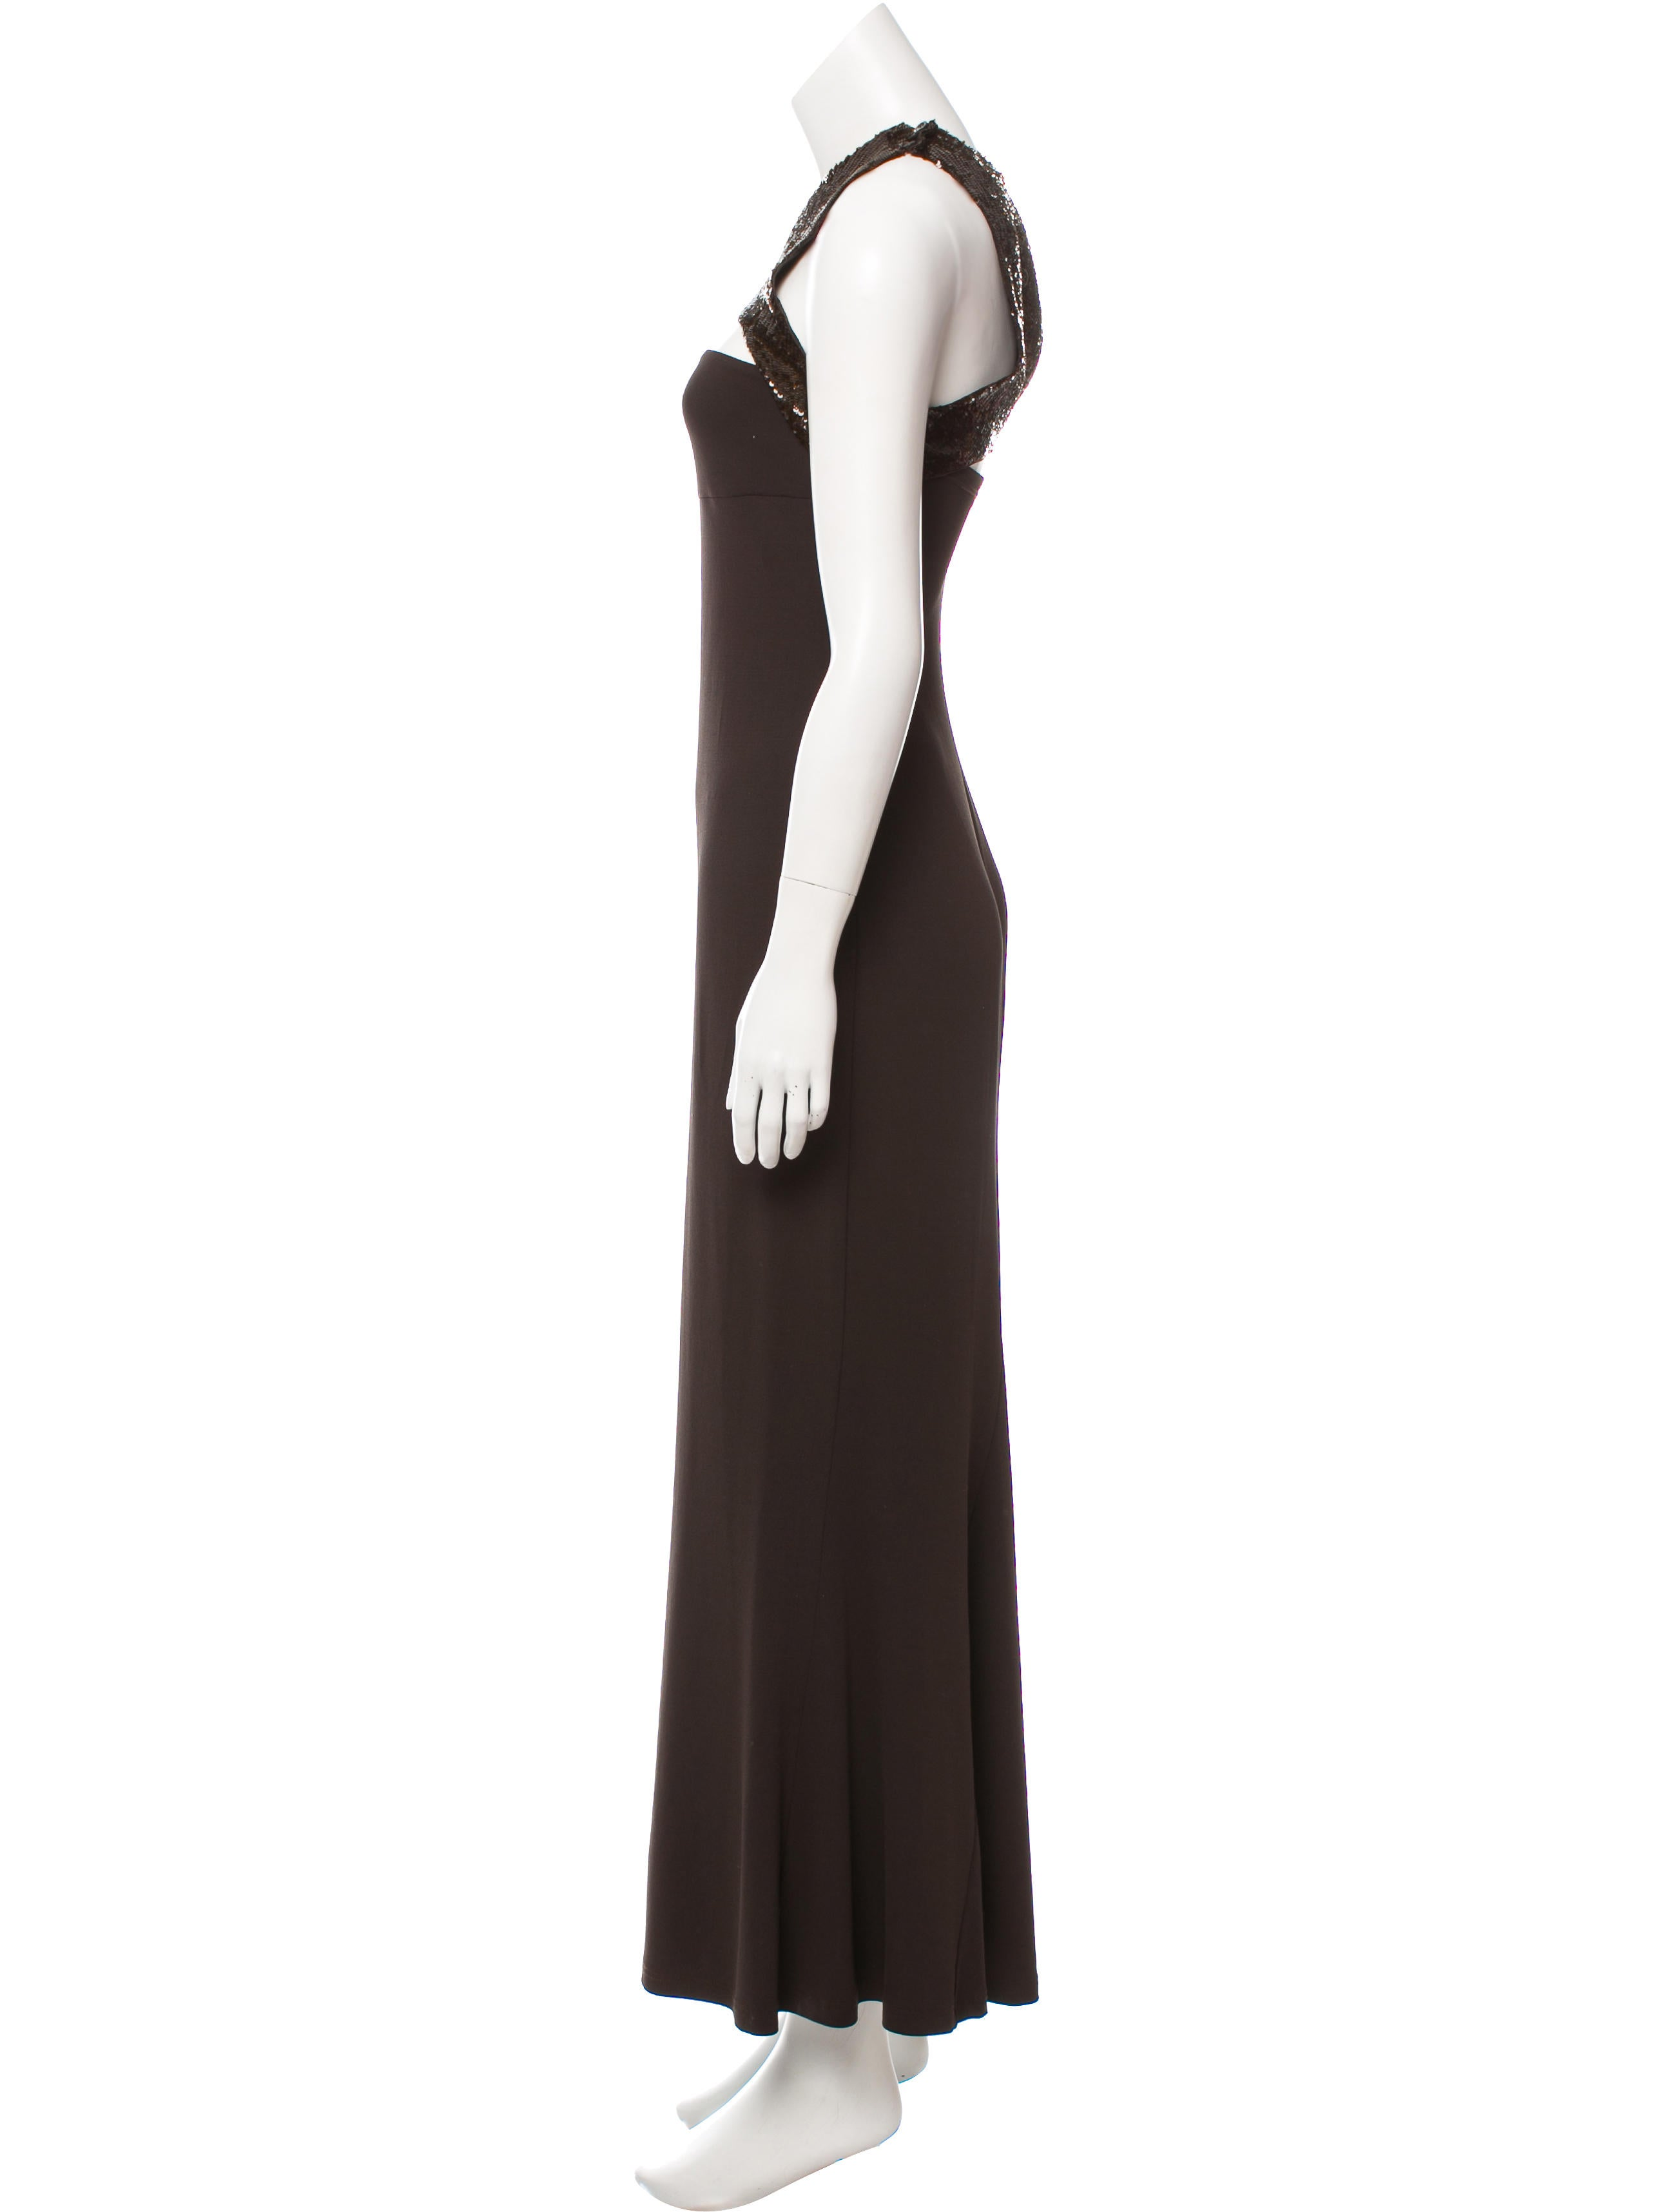 Michael Kors Sequin Evening Dress - Clothing - MIC62890 | The RealReal